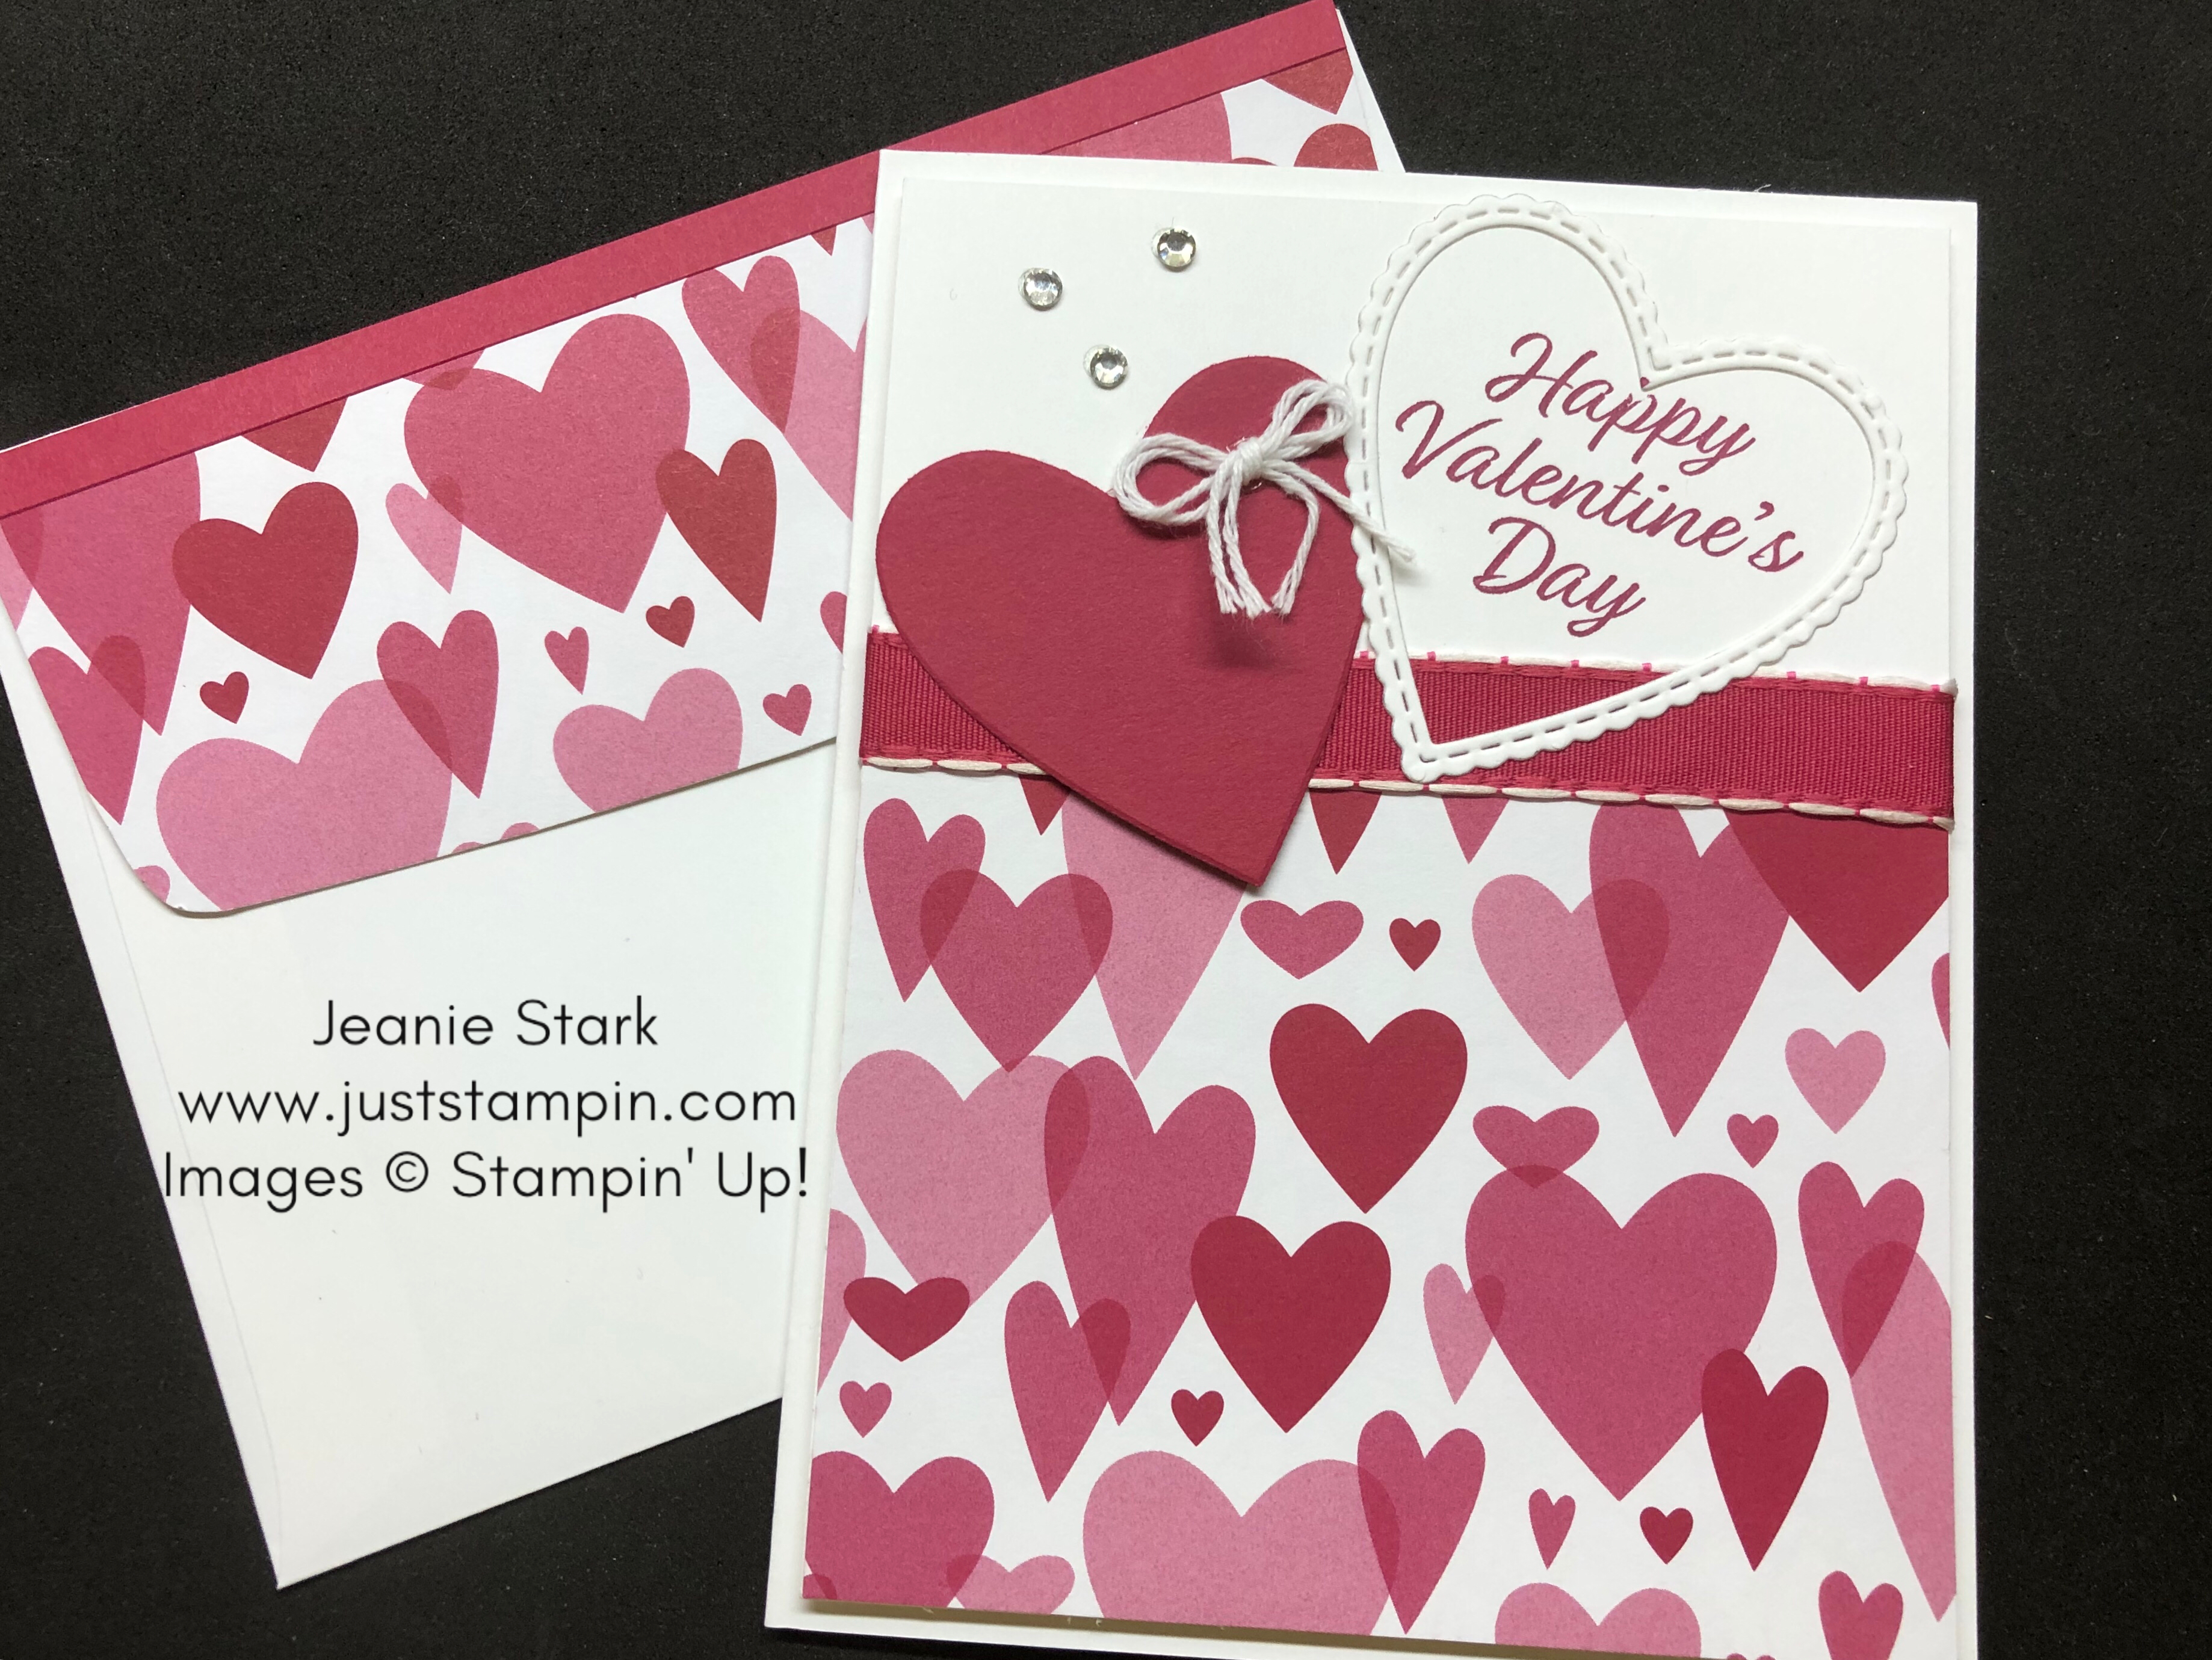 Stampin Up Valentines Day card idea using the Meant to Be Stamp Set and Be Mine Stitched Framelits Dies - Jeanie Stark StampinUp